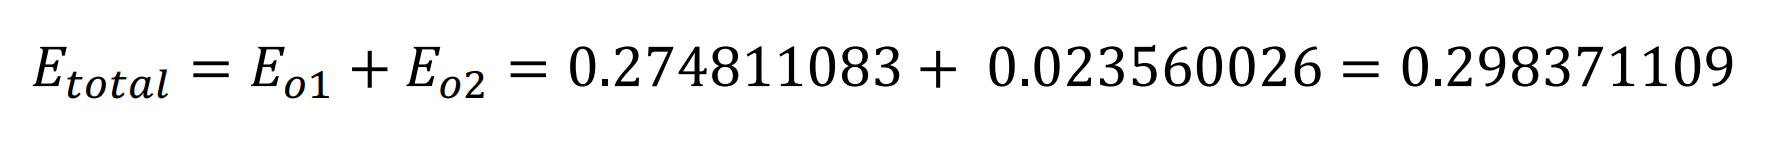 Equation 7 (Series on Neural Networks)